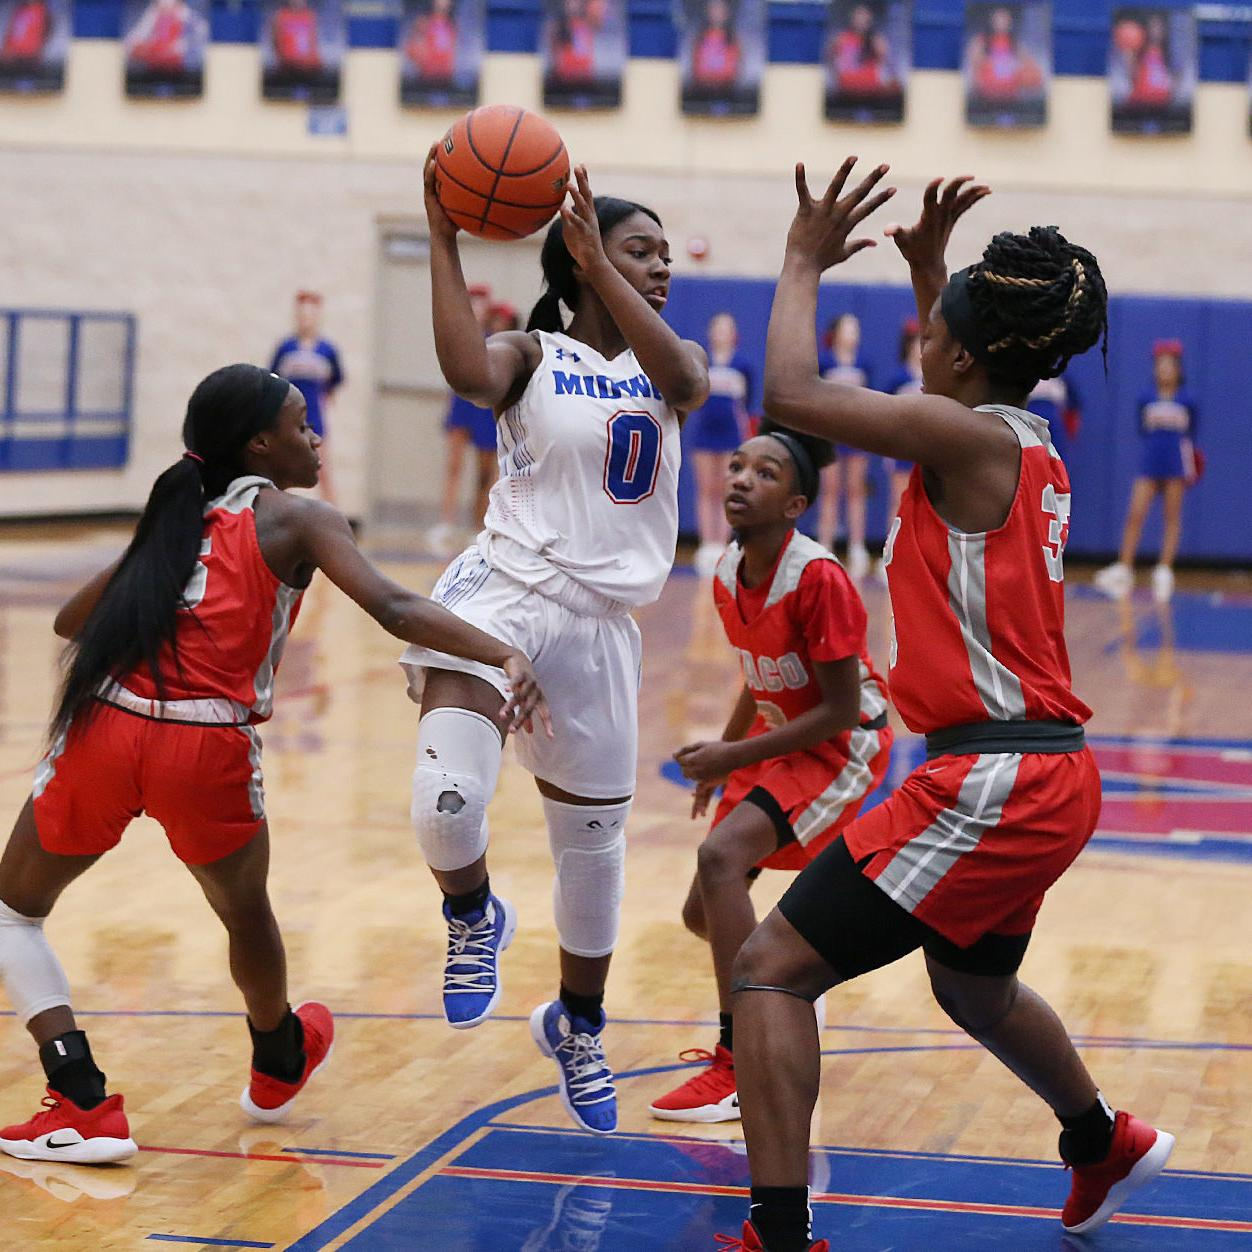 Midway Pantherettes unleash 3-point barrage in rout of Waco